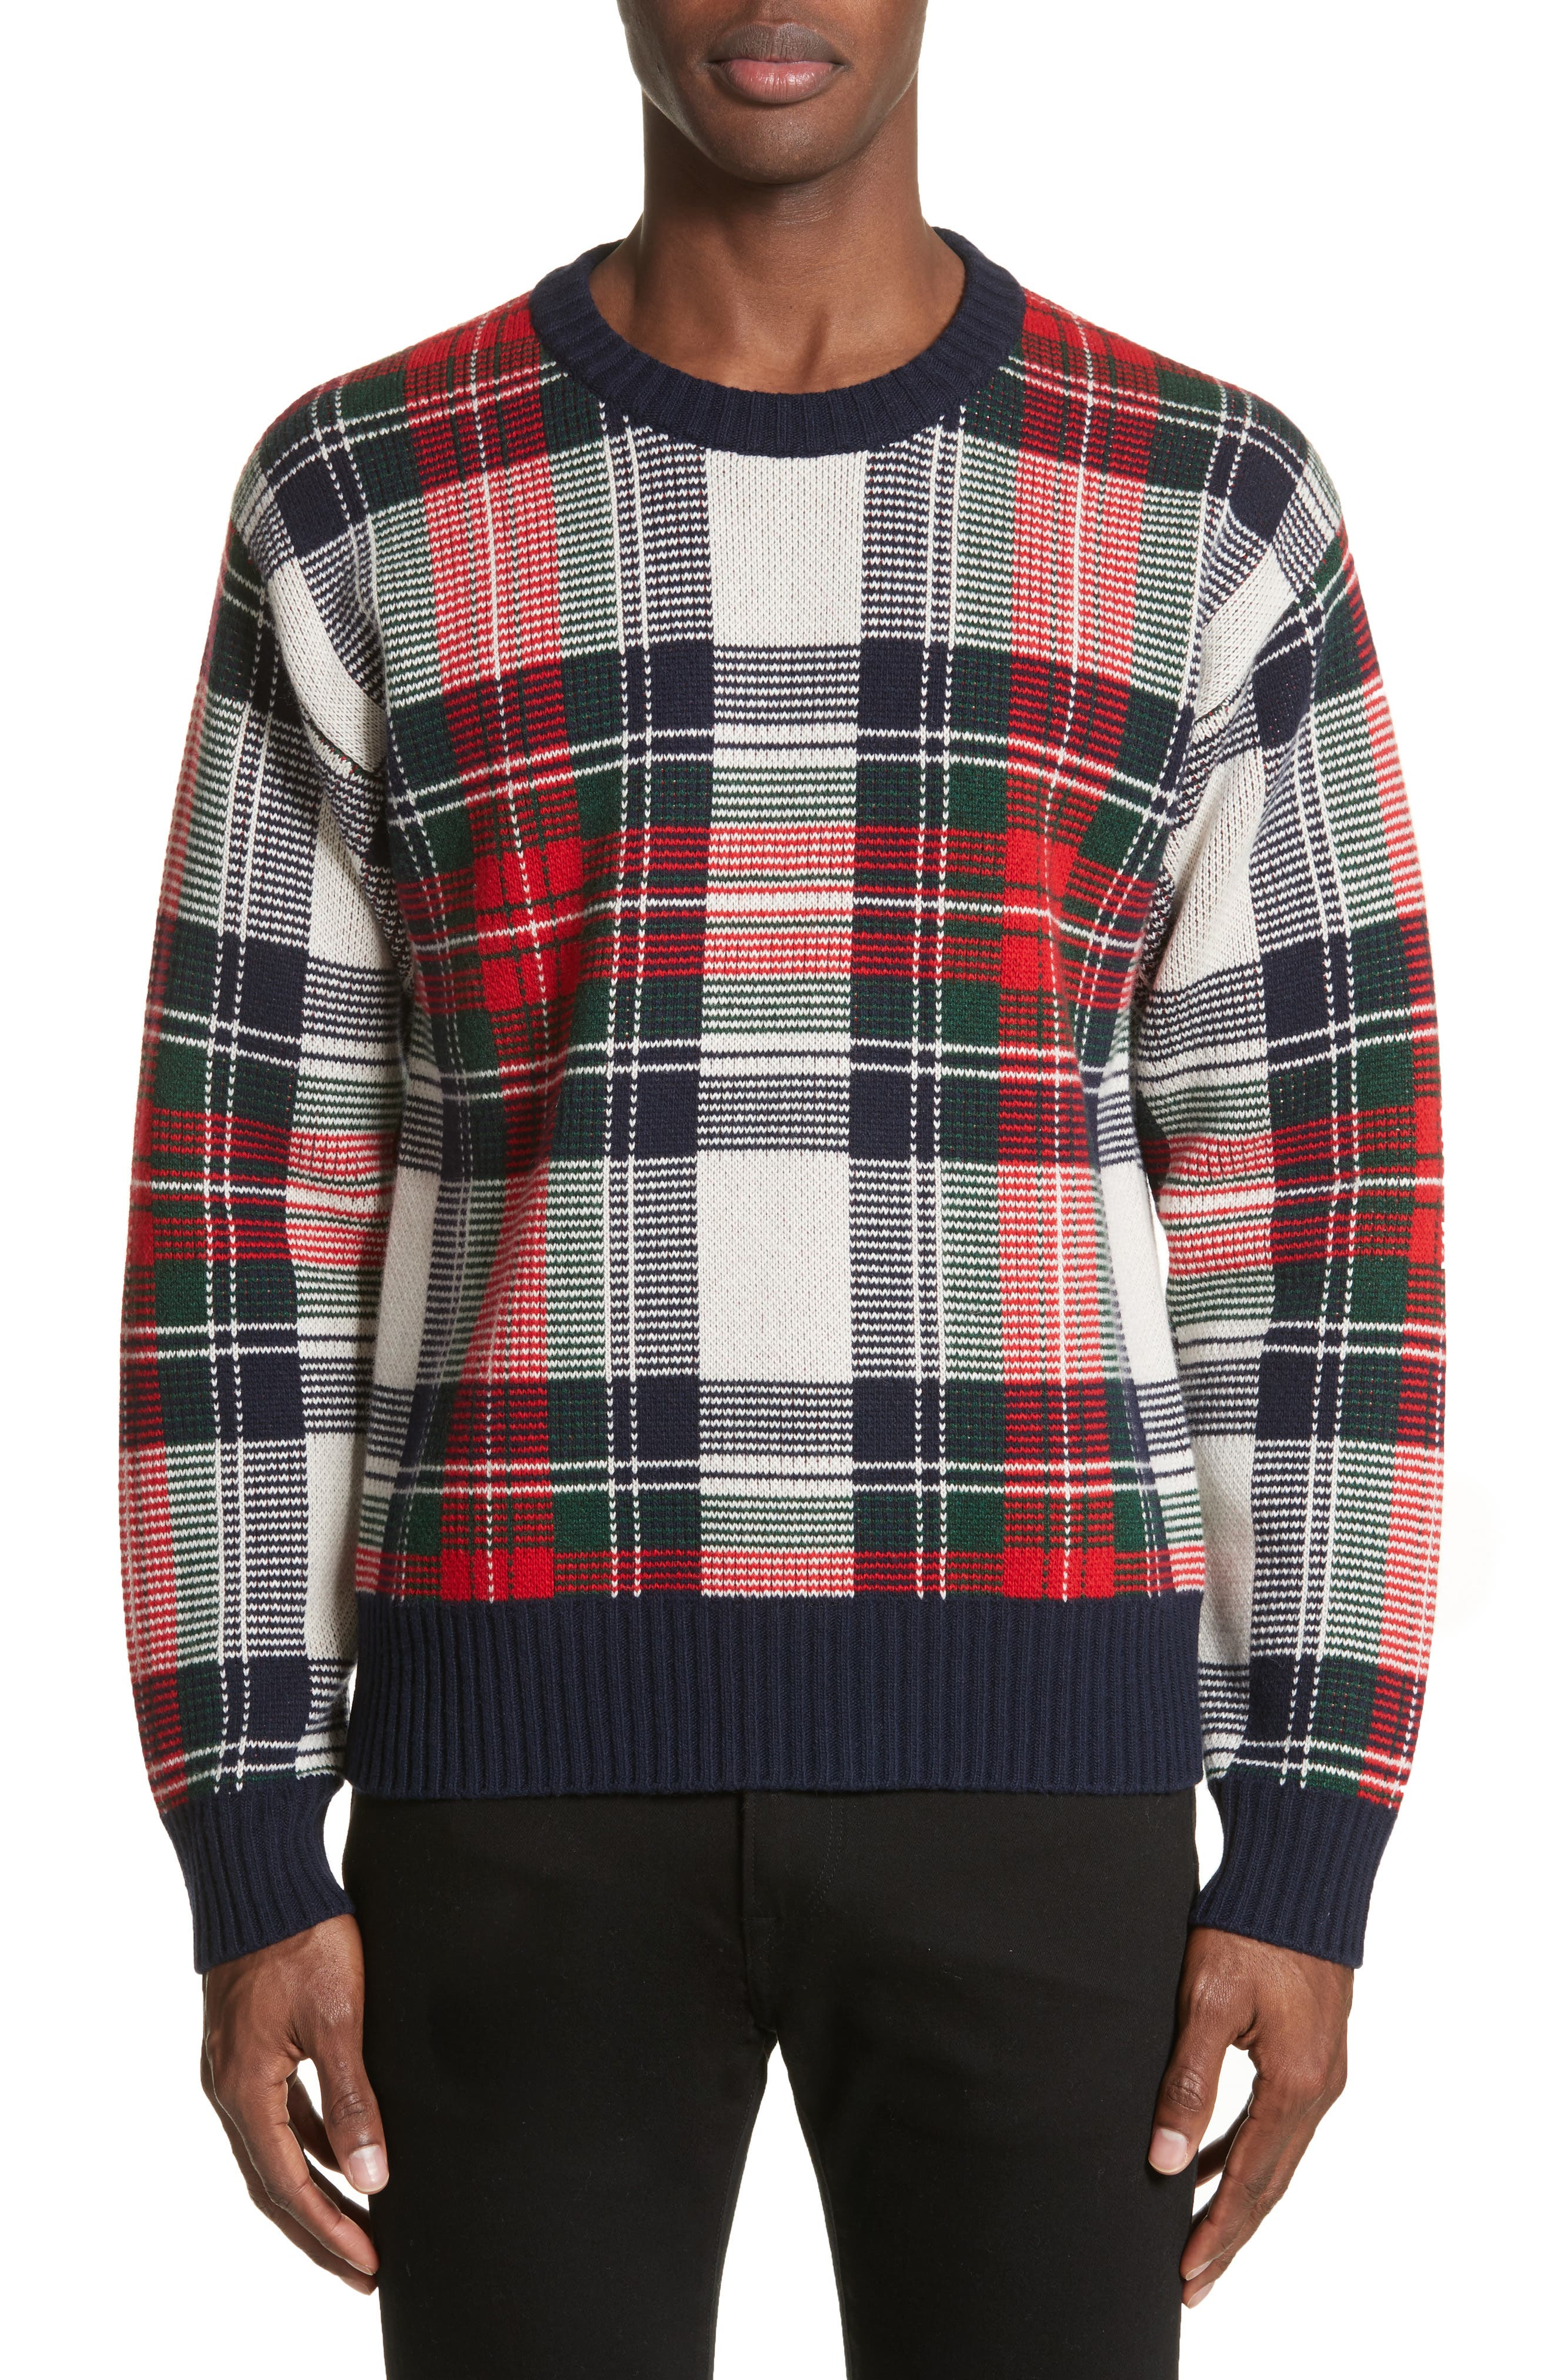 Alternate Image 1 Selected - Burberry Plaid Cashmere & Wool Sweater